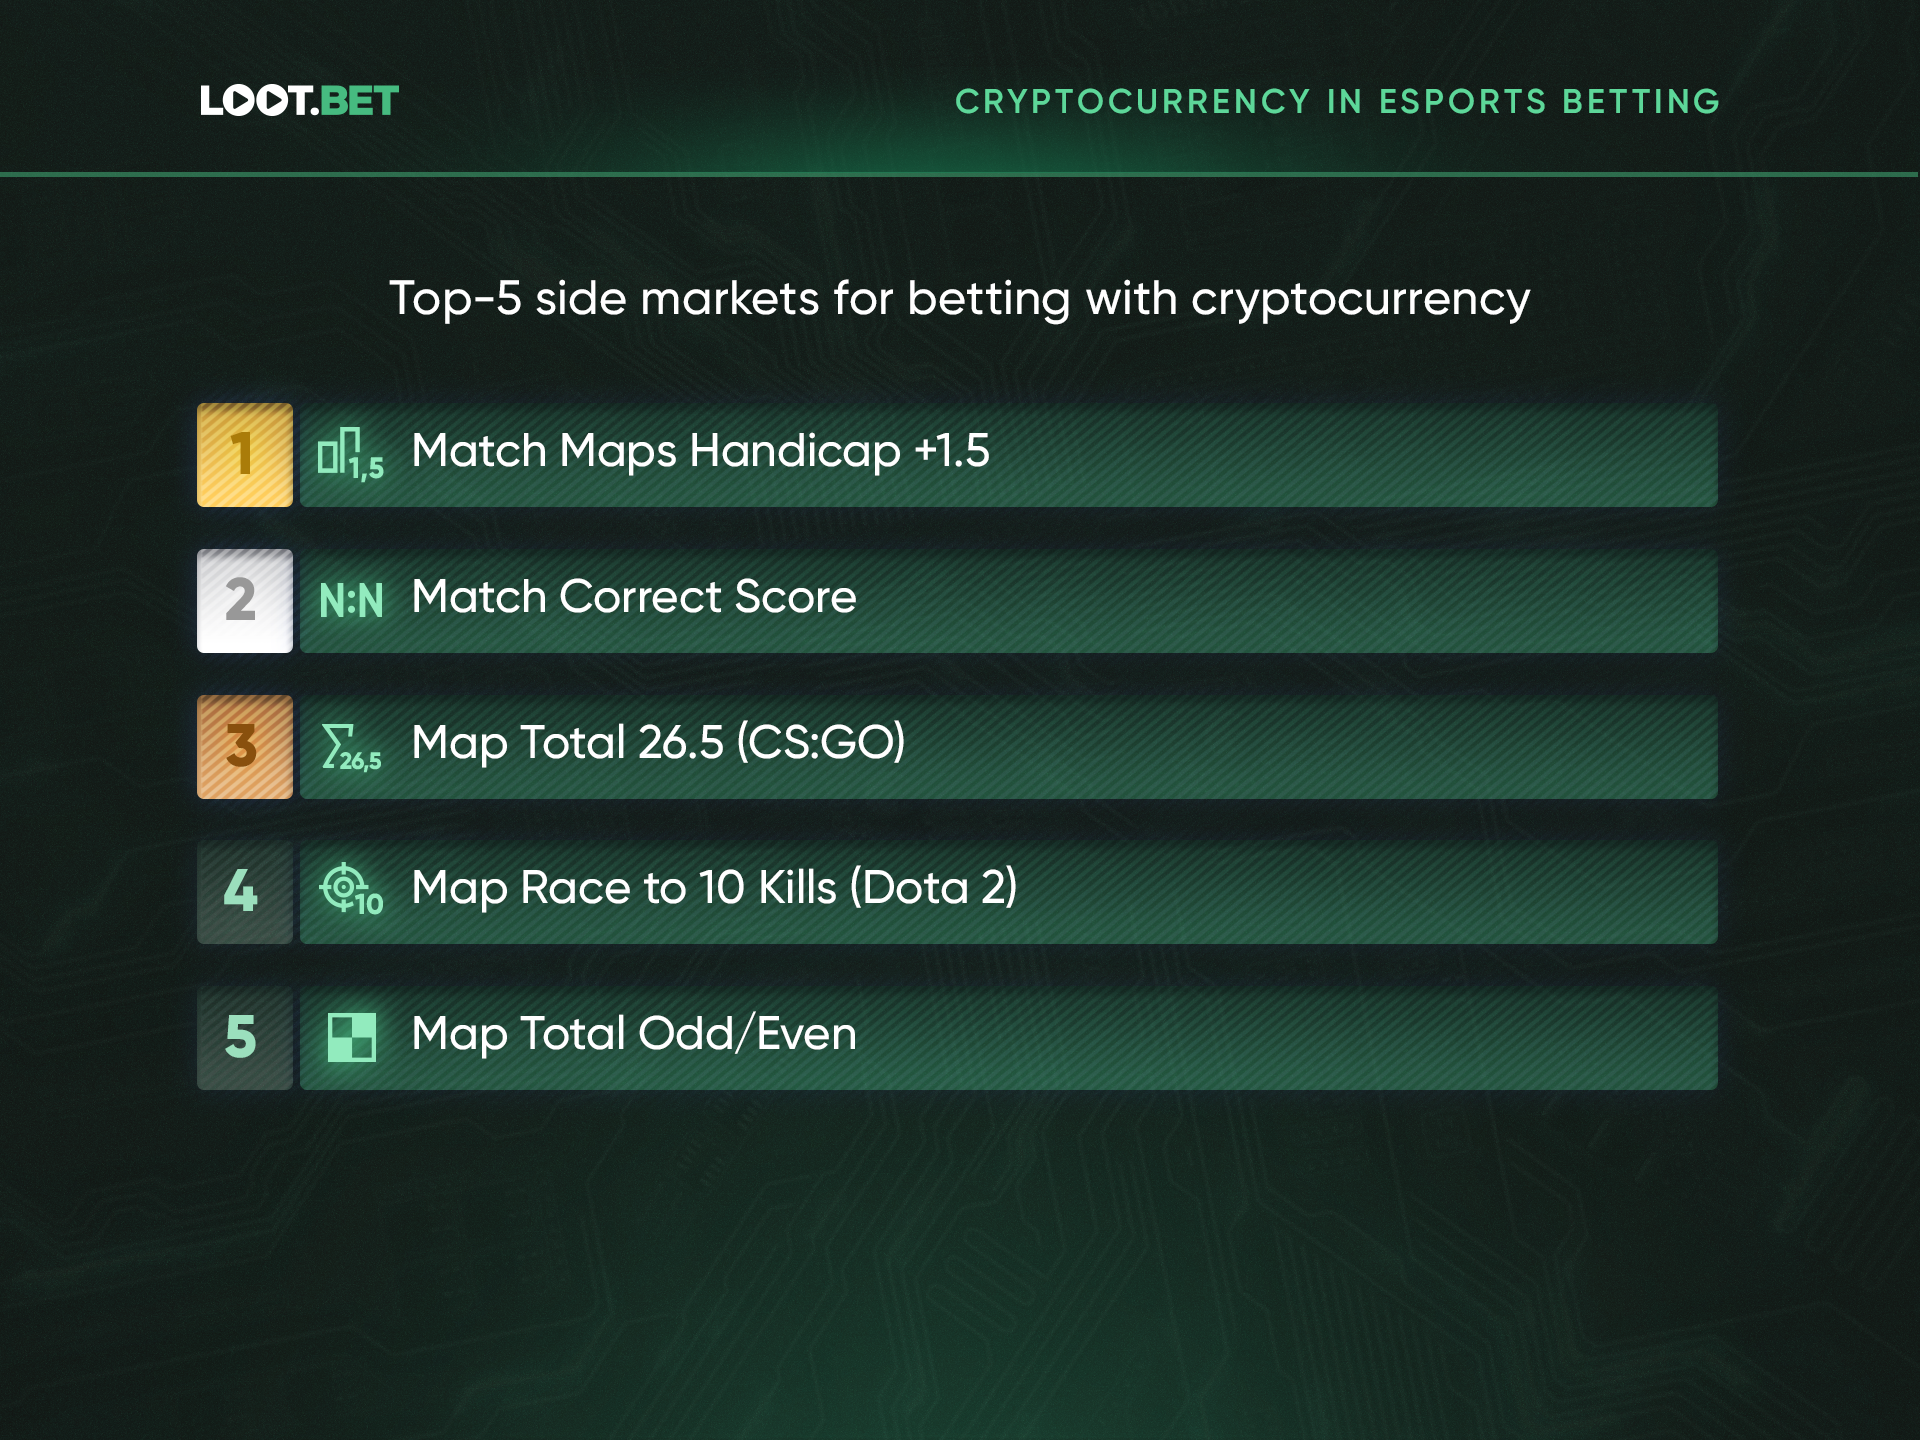 Crypto Esports Betting 5 - Research Reveals Cryptocurrency Owners to Be the Riskiest Esports Bettors